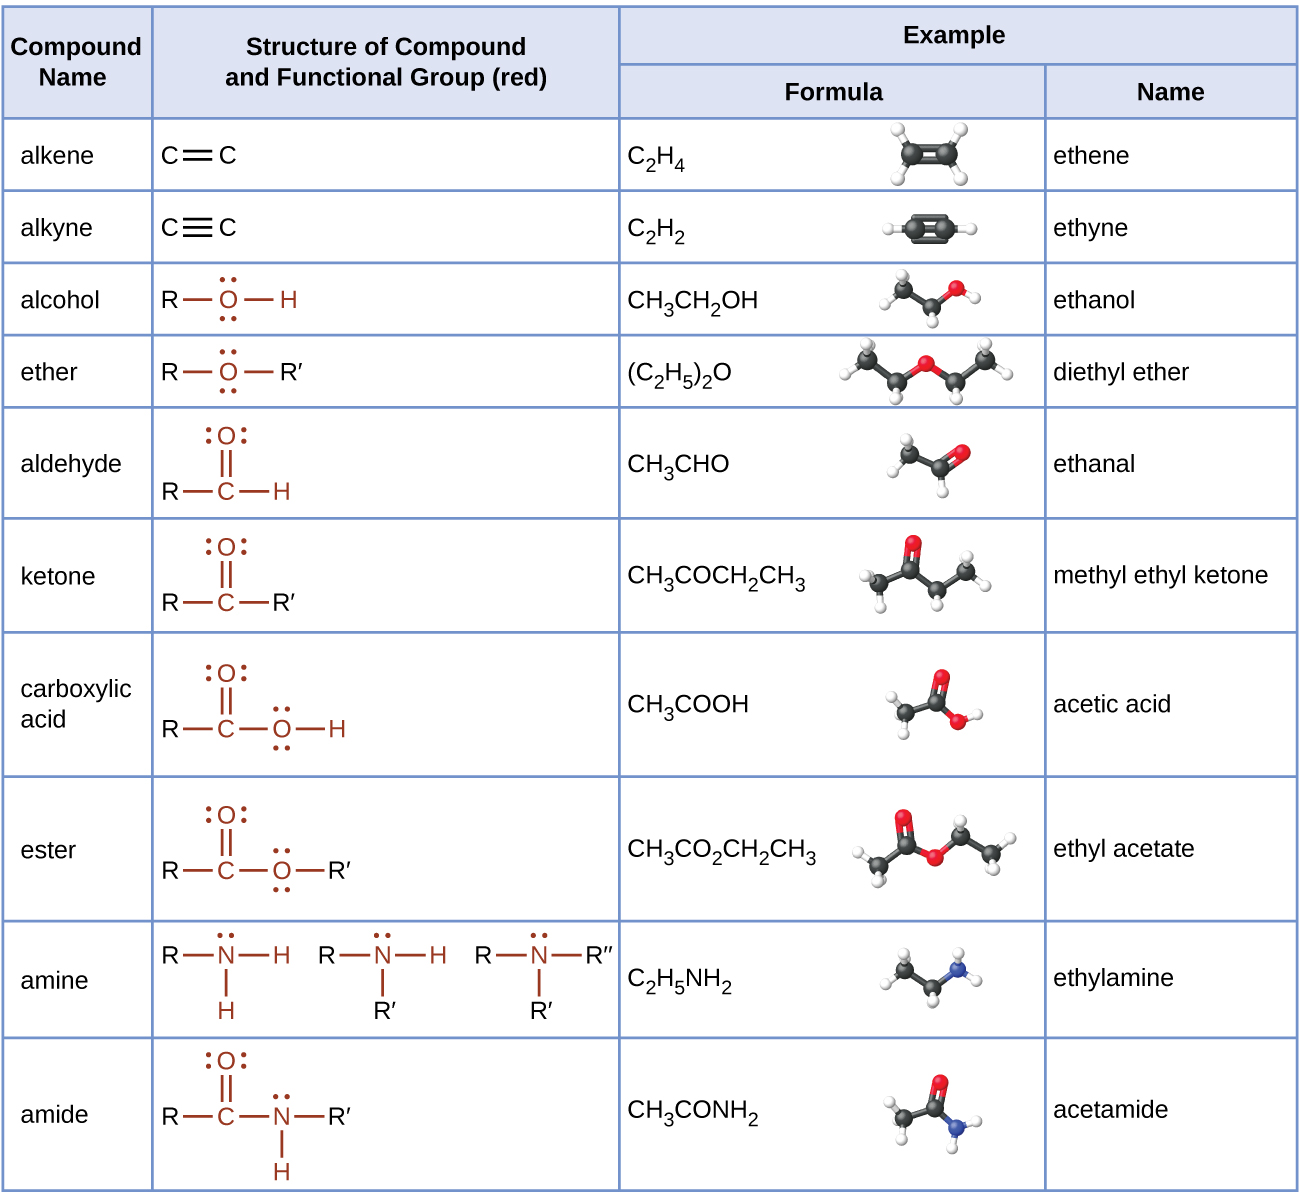 This table provides compound names, structures with functional groups in red, and examples that include formulas, structural formulas, ball-and-stick models, and names. Compound names include alkene, alkyne, alcohol, ether, aldehyde, ketone, carboxylic acid, ester, amine, and amide. Alkenes have a double bond. A formula is C subscript 2 H subscript 4 which is named ethene. The ball-and-stick model shows two black balls forming a double bond and each is bonded to two white balls. Alkynes have a triple bond. A formula is C subscript 2 H subscript 2 which is named ethyne. The ball-and-stick model shows two black balls with a triple bond between them each bonded to one white ball. Alcohols have an O H group. The O has two pairs of electron dots. A formula is C H subscript 3 C H subscript 2 O H which is named ethanol. The ball-and-stick model shows two black balls and one red ball bonded to each other with a single bond. There are four white balls visible. Ethers have an O atom in the structure between two R groups. The O atom has two sets of electron dots. A formula is ( C subscript 2 H subscript 5 ) subscript 2 O which is named ethanal. The ball-and-stick model shows two black balls bonded to a red ball which is bonded to two more black balls. All bonds are single. There are five white balls visible. Aldehydes have a C atom to which a double bonded O and an H and an R are included in the structure. The O atom has two sets of electron dots. A formula is C H subscript 3 C H O which is named Ethanal. The ball-and-stick model shows two black bonds bonded to two red balls. The ball-and-stick model shows two black balls bonded with a single bond and the second black ball forms a double bond with a red ball. There are three white balls visible. Ketones show a C atom to which a double bonded O is attached. The left side of the C atom is bonded to R and the right side is bonded to R prime. The O atom as two sets of electron dots. The formula is C H subscript 3 C O C H subscript 2 C H subscript 3 and is named methyl ethyl ketone. The ball-and-stick models shows four black balls all forming single bonds with each other. The second black ball forms a double bond with a red ball. There are five white balls visible. Carboxylic acids have a C to which a double bonded O and an O H are included in the structure. Each O atom has two sets of electron dots. A formula is C H subscript 3 C O O H which is named ethanoic or acetic acid. The ball-and-stick model shows two black balls and one red ball forming single bonds with each other. The second black ball also forms a double bond with another red ball. Three white balls are visible. Esters have a C atom which forms a double bond with an O atom and single bond with another O atom which has an attached hydrocarbon group in the structure. Each O atom has two sets of electron dots. A formula is C H subscript 3 C O subscript 2 C H subscript 2 C H subscript 3 which is named ethyl acetate. The ball-and-stick model shows two black balls, a red ball, and two more black balls forming single bonds with each other. The second black ball forms a double bond with another red ball. There are five white balls visible. Amines have an N atom in the structure to which three hydrocarbon groups, two hydrocarbon groups and one H atom, or one hydrocarbon group and two H atoms may be bonded. Each n has a single set of electron dots. A formula is C subscript 2 H subscript 5 N H subscript 2 which is named ethylamine. The ball-and-stick model shows two black balls and one blue ball forming single bonds with each other. There are five white balls visible. Amides have a C to which a double bonded O and single N incorporated in a structure between two hydrocarbon groups. One hydrocarbon group is bonded to the C, the other to the N. Amides can also have a H atom bonded to the N. The O atom as two sets of electron dots, and the N atom has one set. A formula is C H subscript 3 C O N H subscript 2 which is named ethanamide or acetamide. The ball-and-stick model shows two black balls and one blue ball forming single bonds with each other. The second black ball forms a double bond with one red ball. There are four white balls visible.